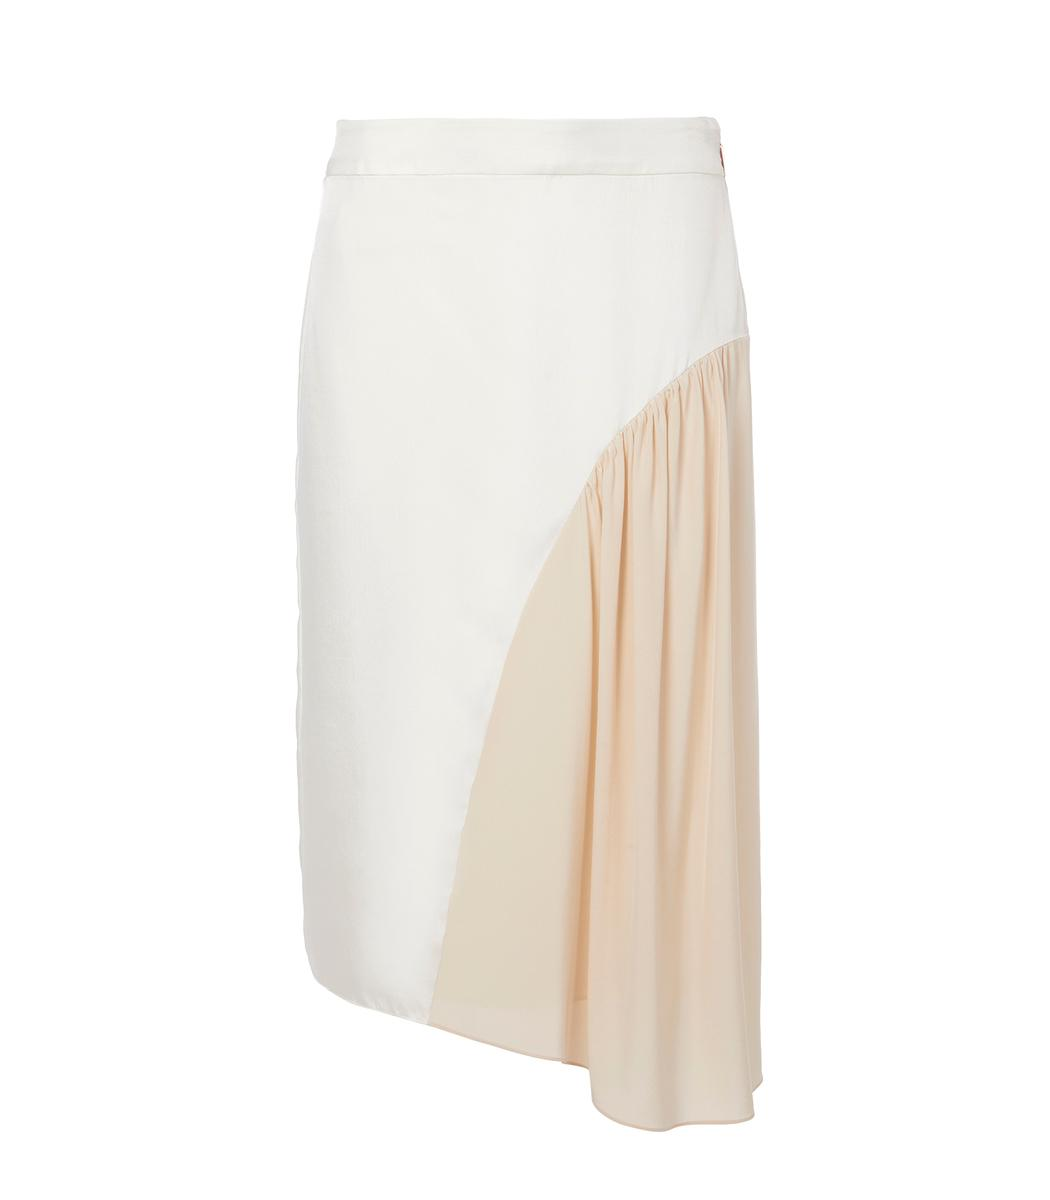 Tibi Ivory/Blush Multi Color Block Shirred Skirt